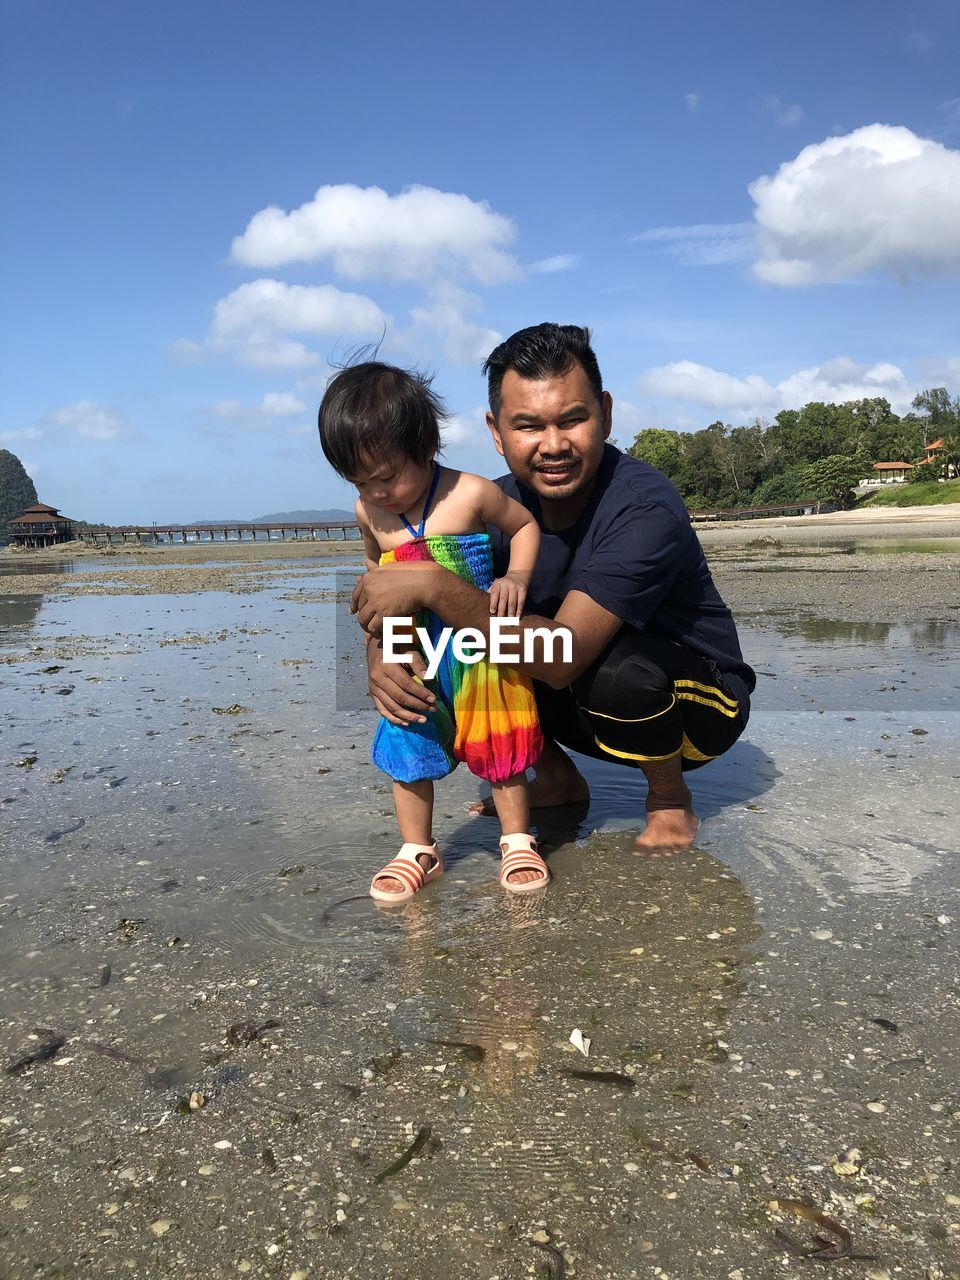 childhood, child, males, two people, togetherness, men, sky, full length, family, real people, water, boys, bonding, cloud - sky, beach, leisure activity, emotion, casual clothing, positive emotion, innocence, son